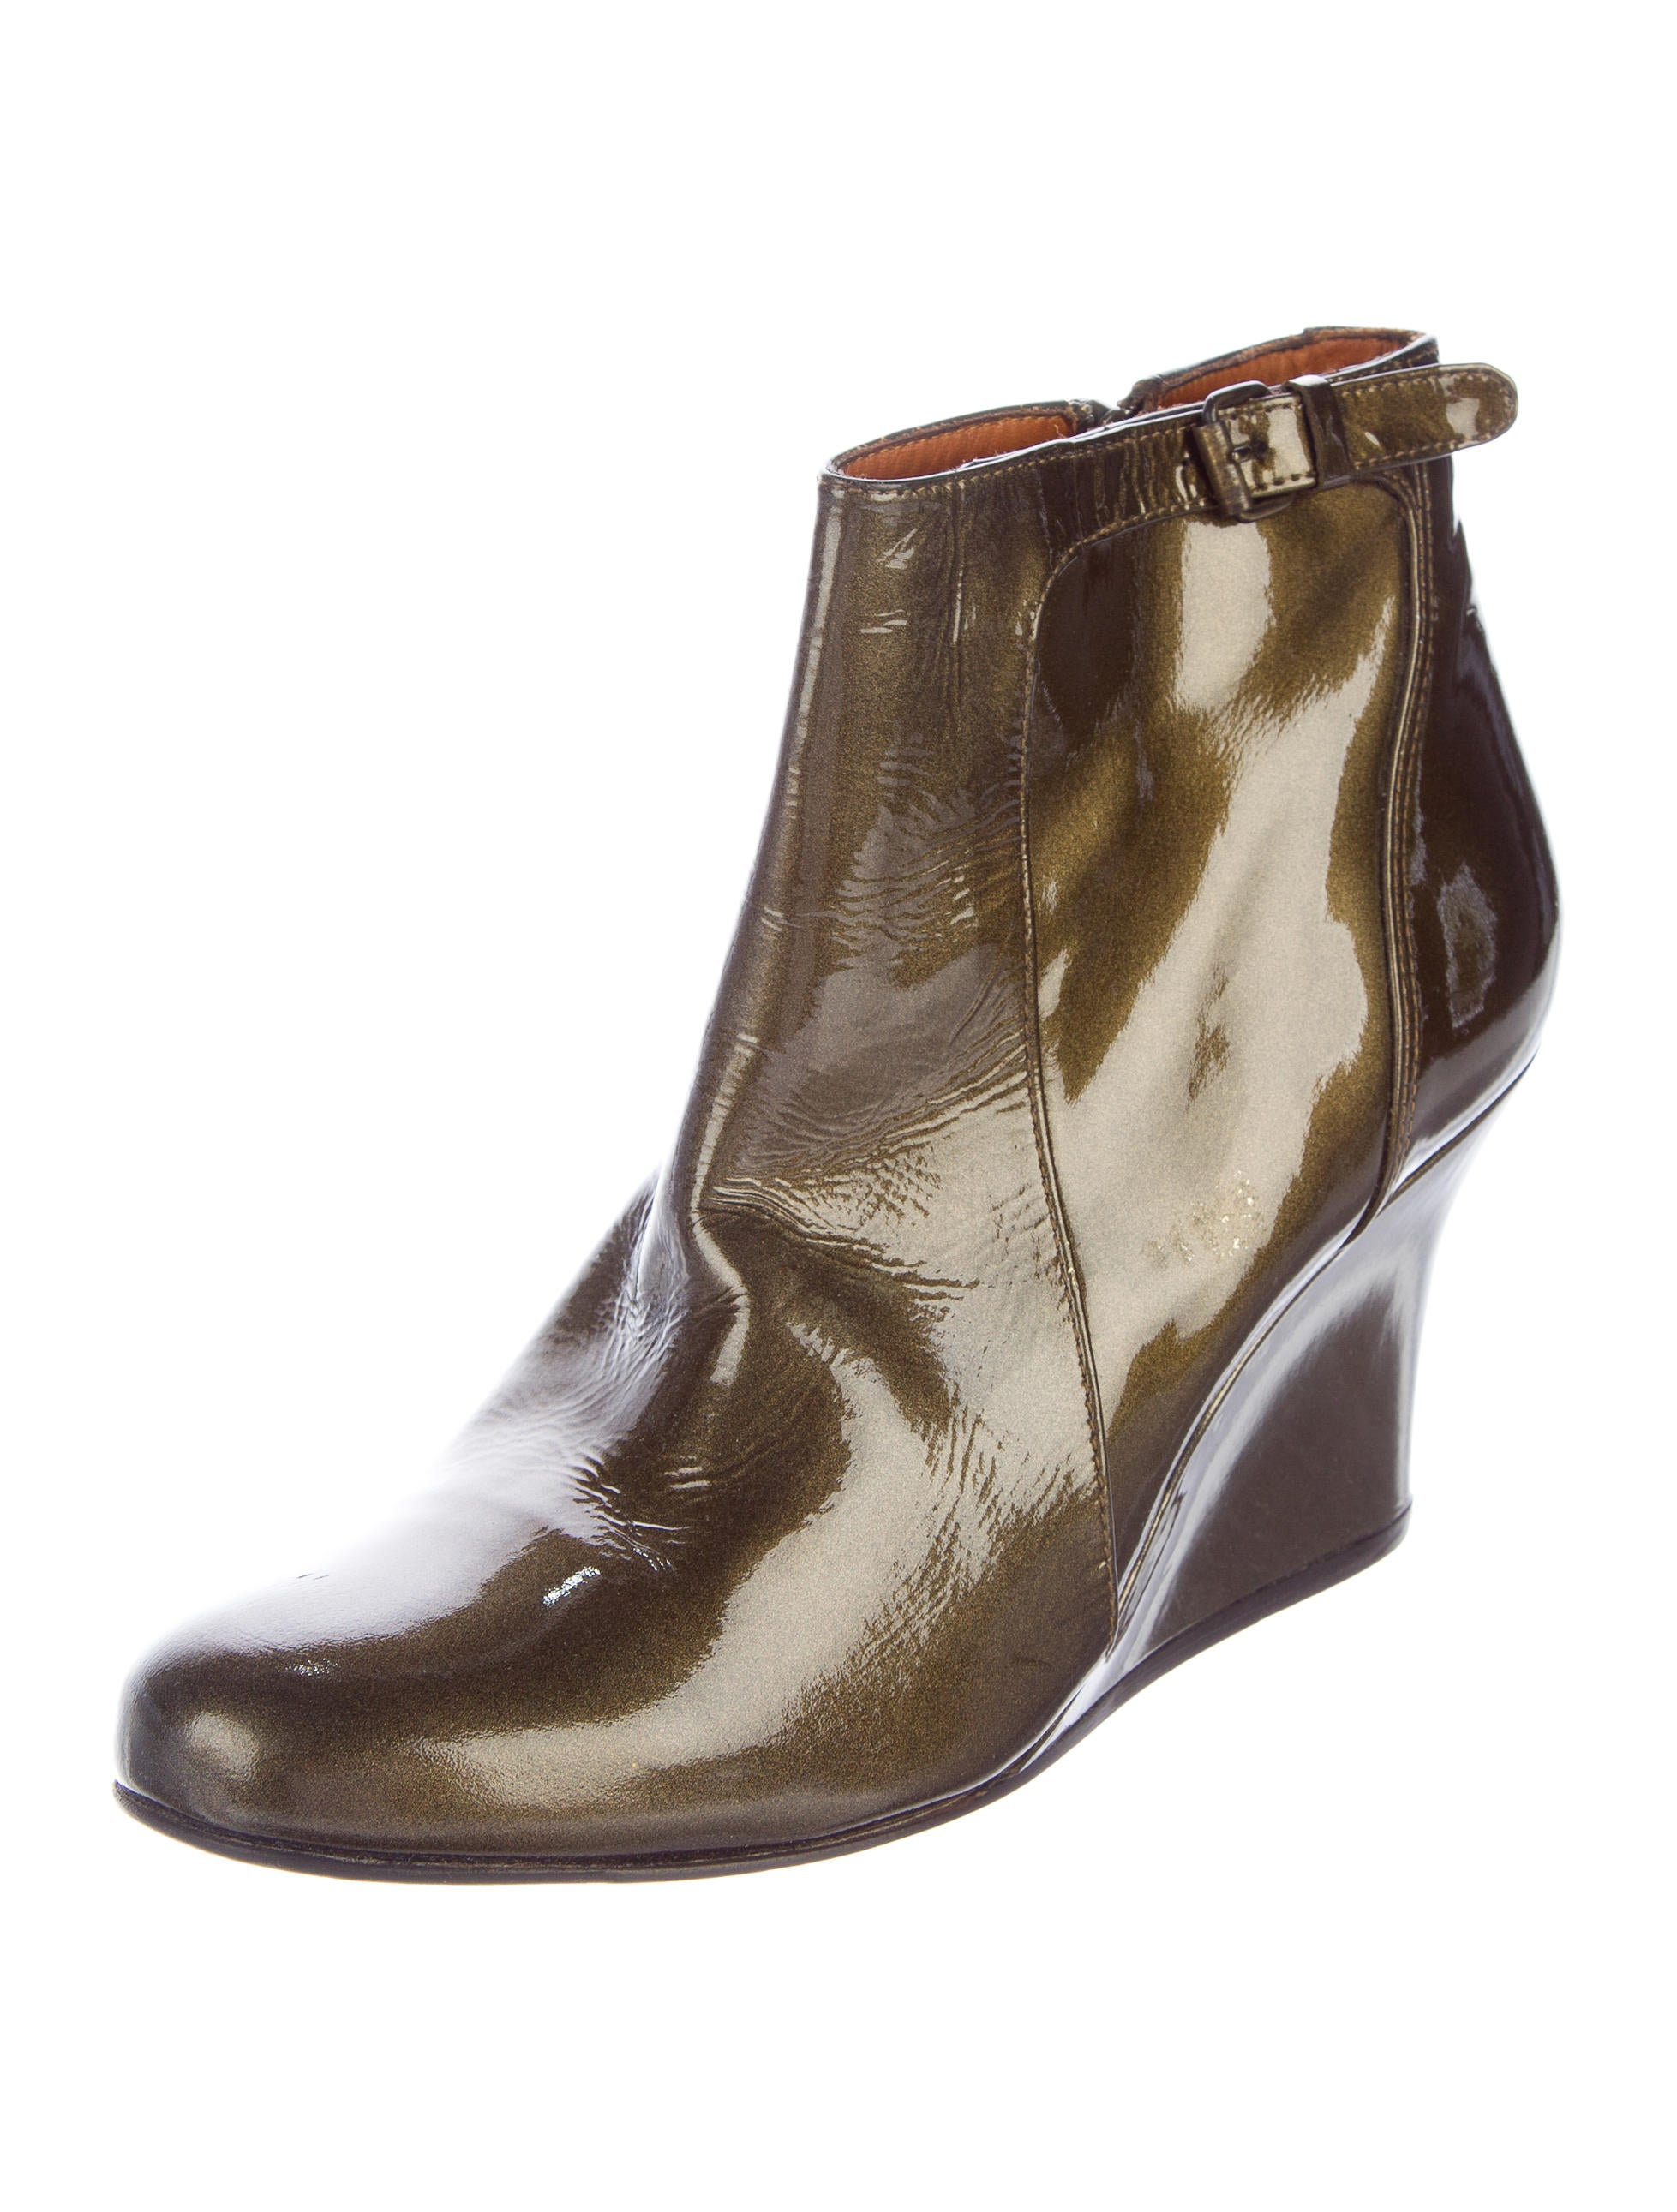 lanvin patent leather wedge booties shoes lan63667